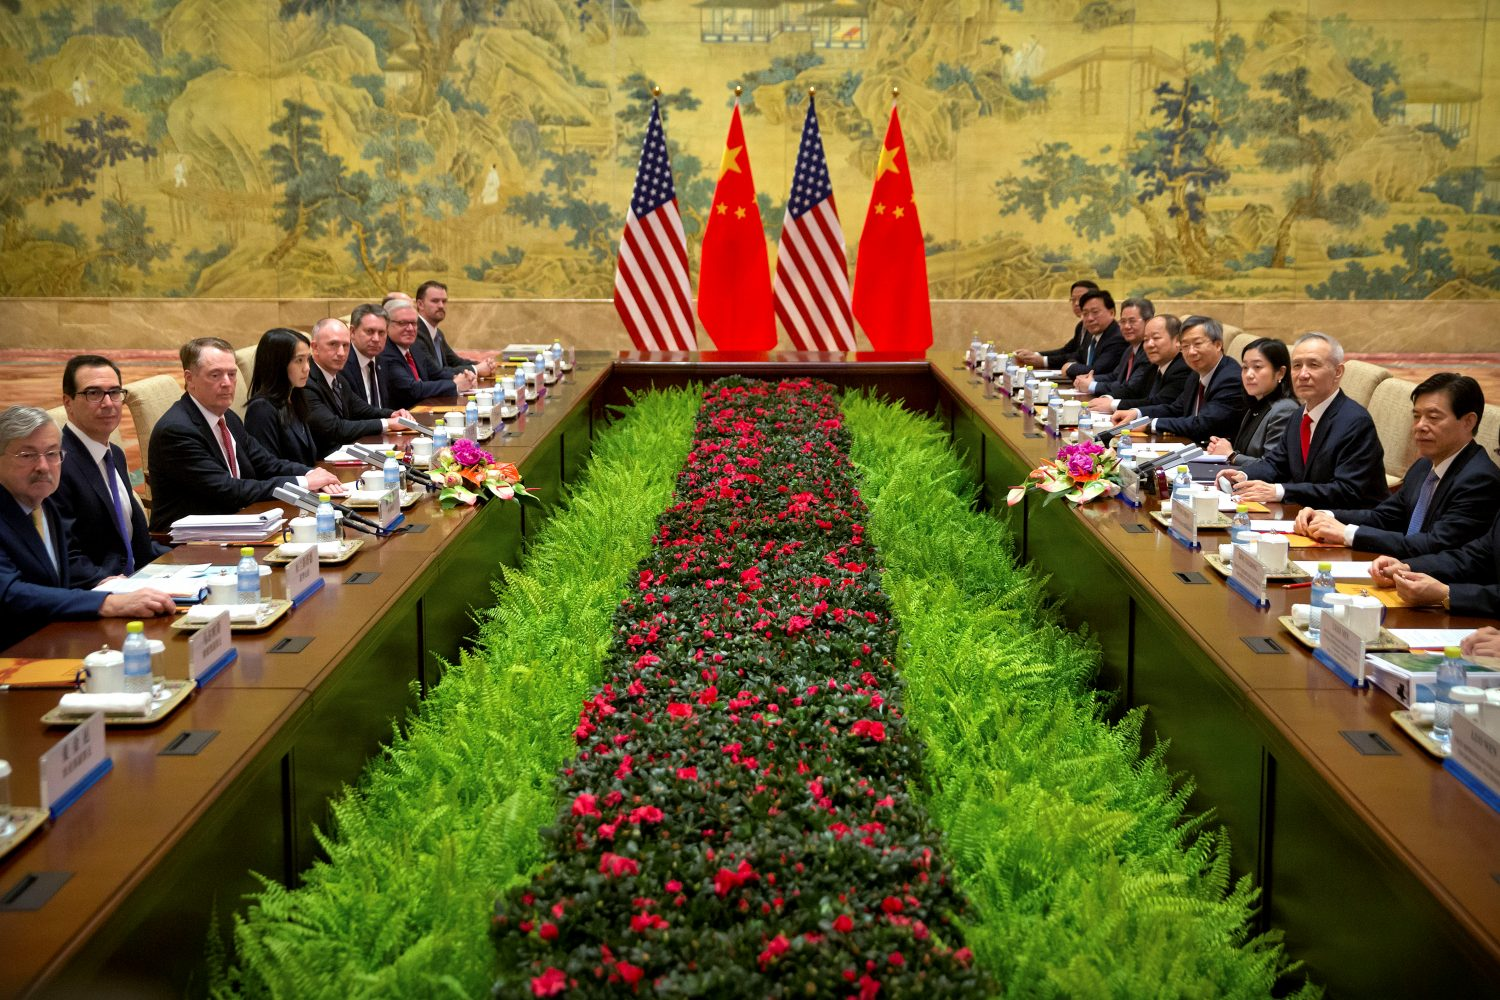 U.S. Treasury Secretary Steven Mnuchin, second from left, U.S. Trade Representative Robert Lighthizer, third from left, and Chinese Vice Premier and lead trade negotiator Liu He, second from right, pose for a photo before the opening session of trade negotiations at the Diaoyutai State Guesthouse in Beijing, Thursday, Feb. 14, 2019. Mark Schiefelbein/Pool via REUTERS